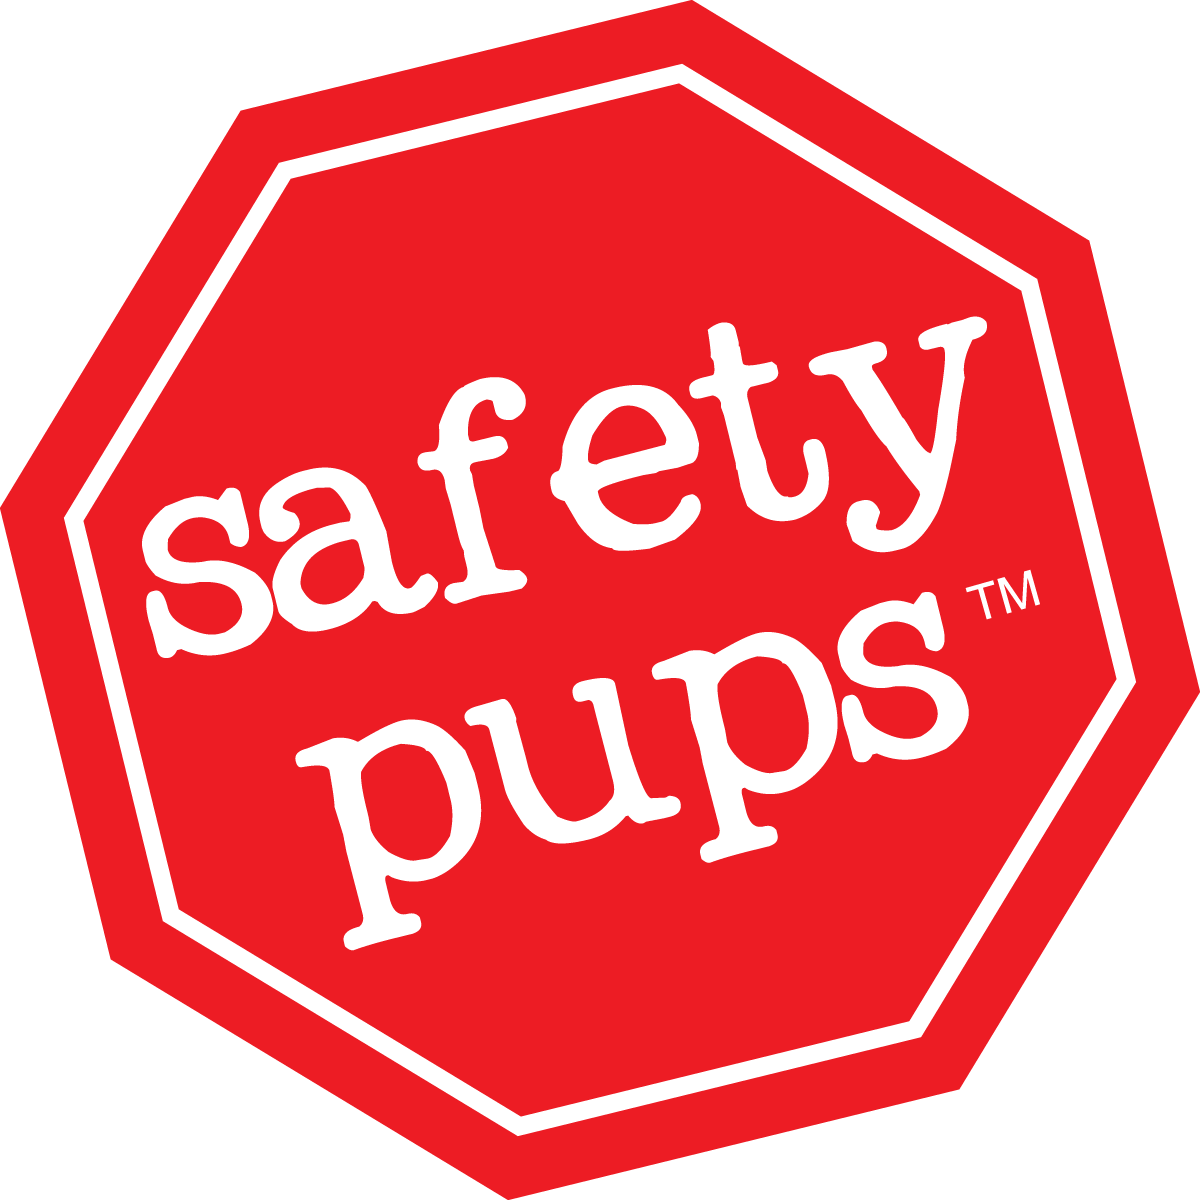 safety-pups.png